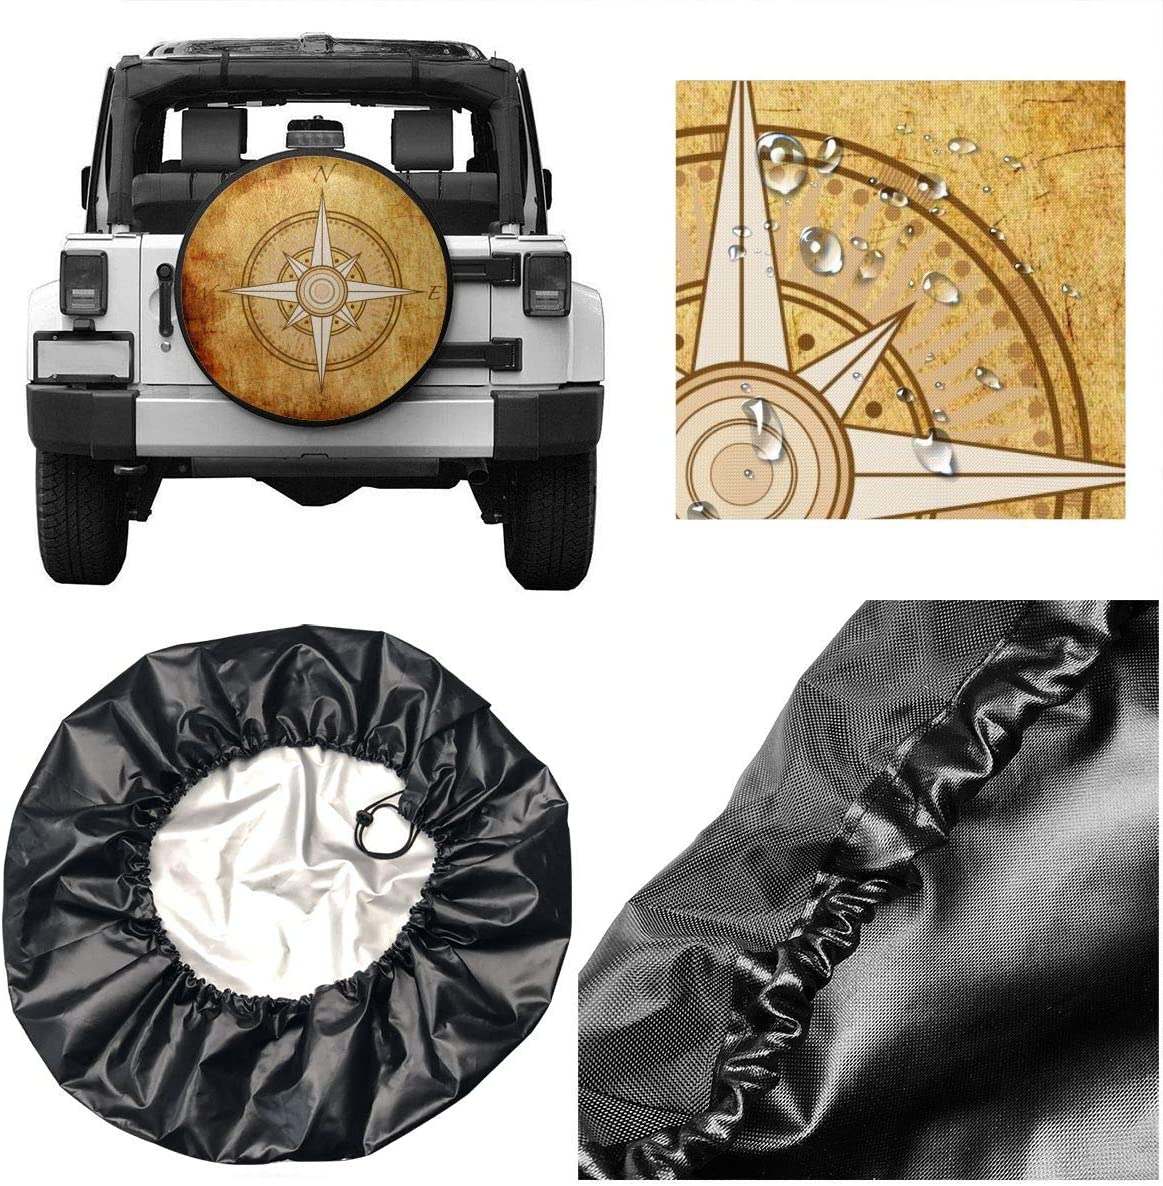 Truck and Many Vehicle 14 15 16 17inch Rv Camper Travel Trailer SUV N,A Spare Tire Cover Waterproof Dust-Proof Universal Wheel Tire Cover Fit for Jeep